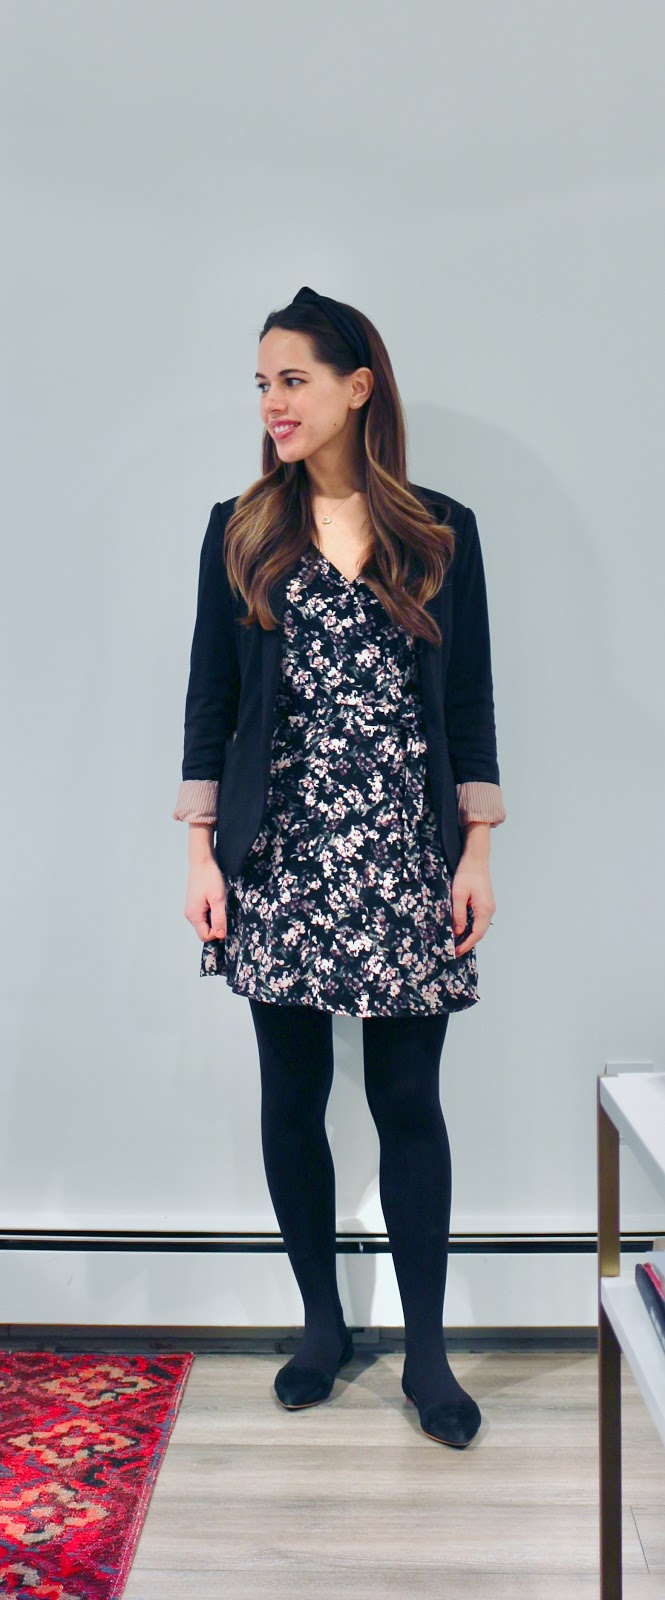 Jules in Flats - Floral Mini Wrap Dress with Blazer (Business Casual Winter Workwear on a Budget)